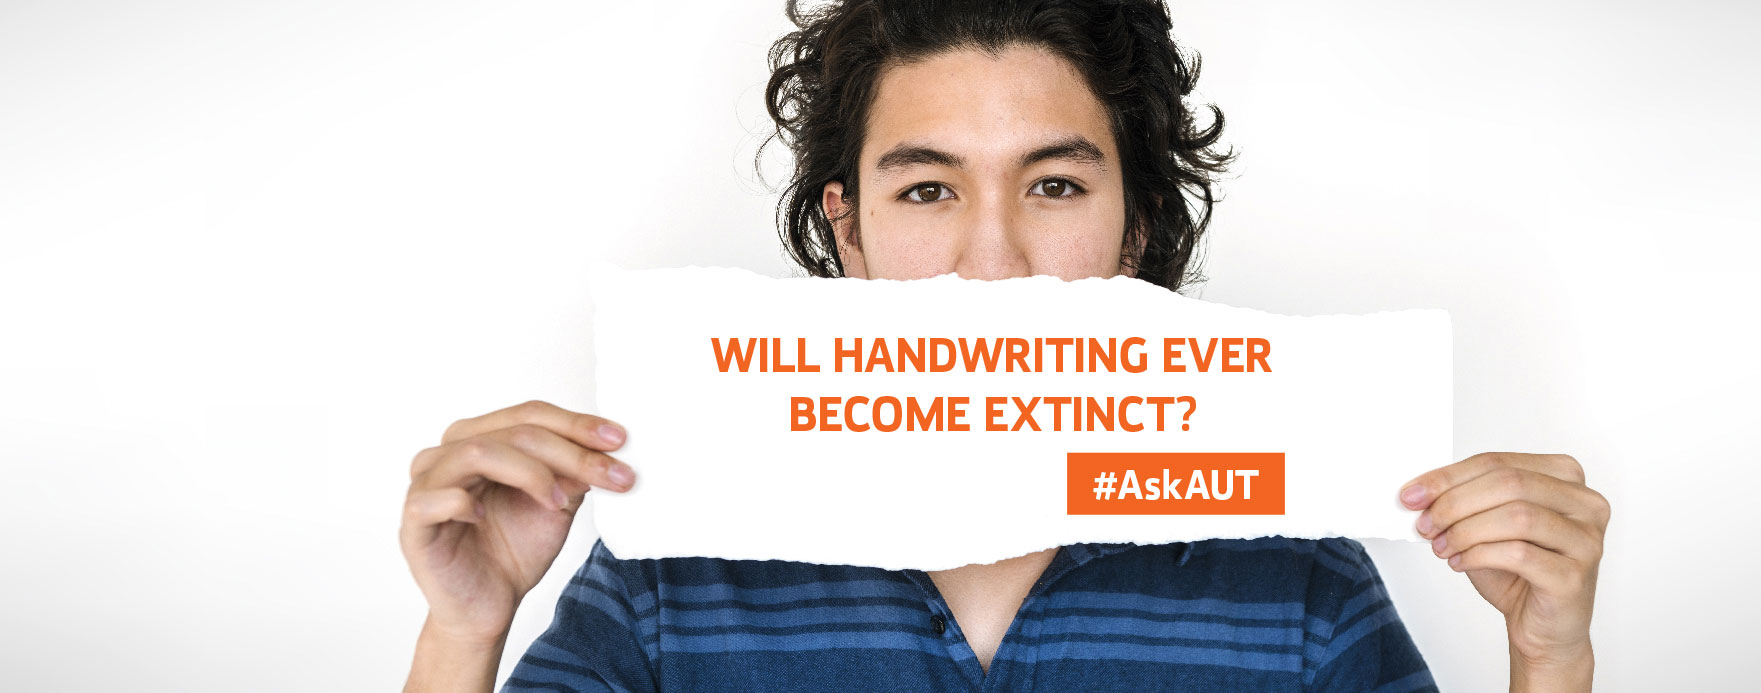 Will Handwriting ever become extinct?